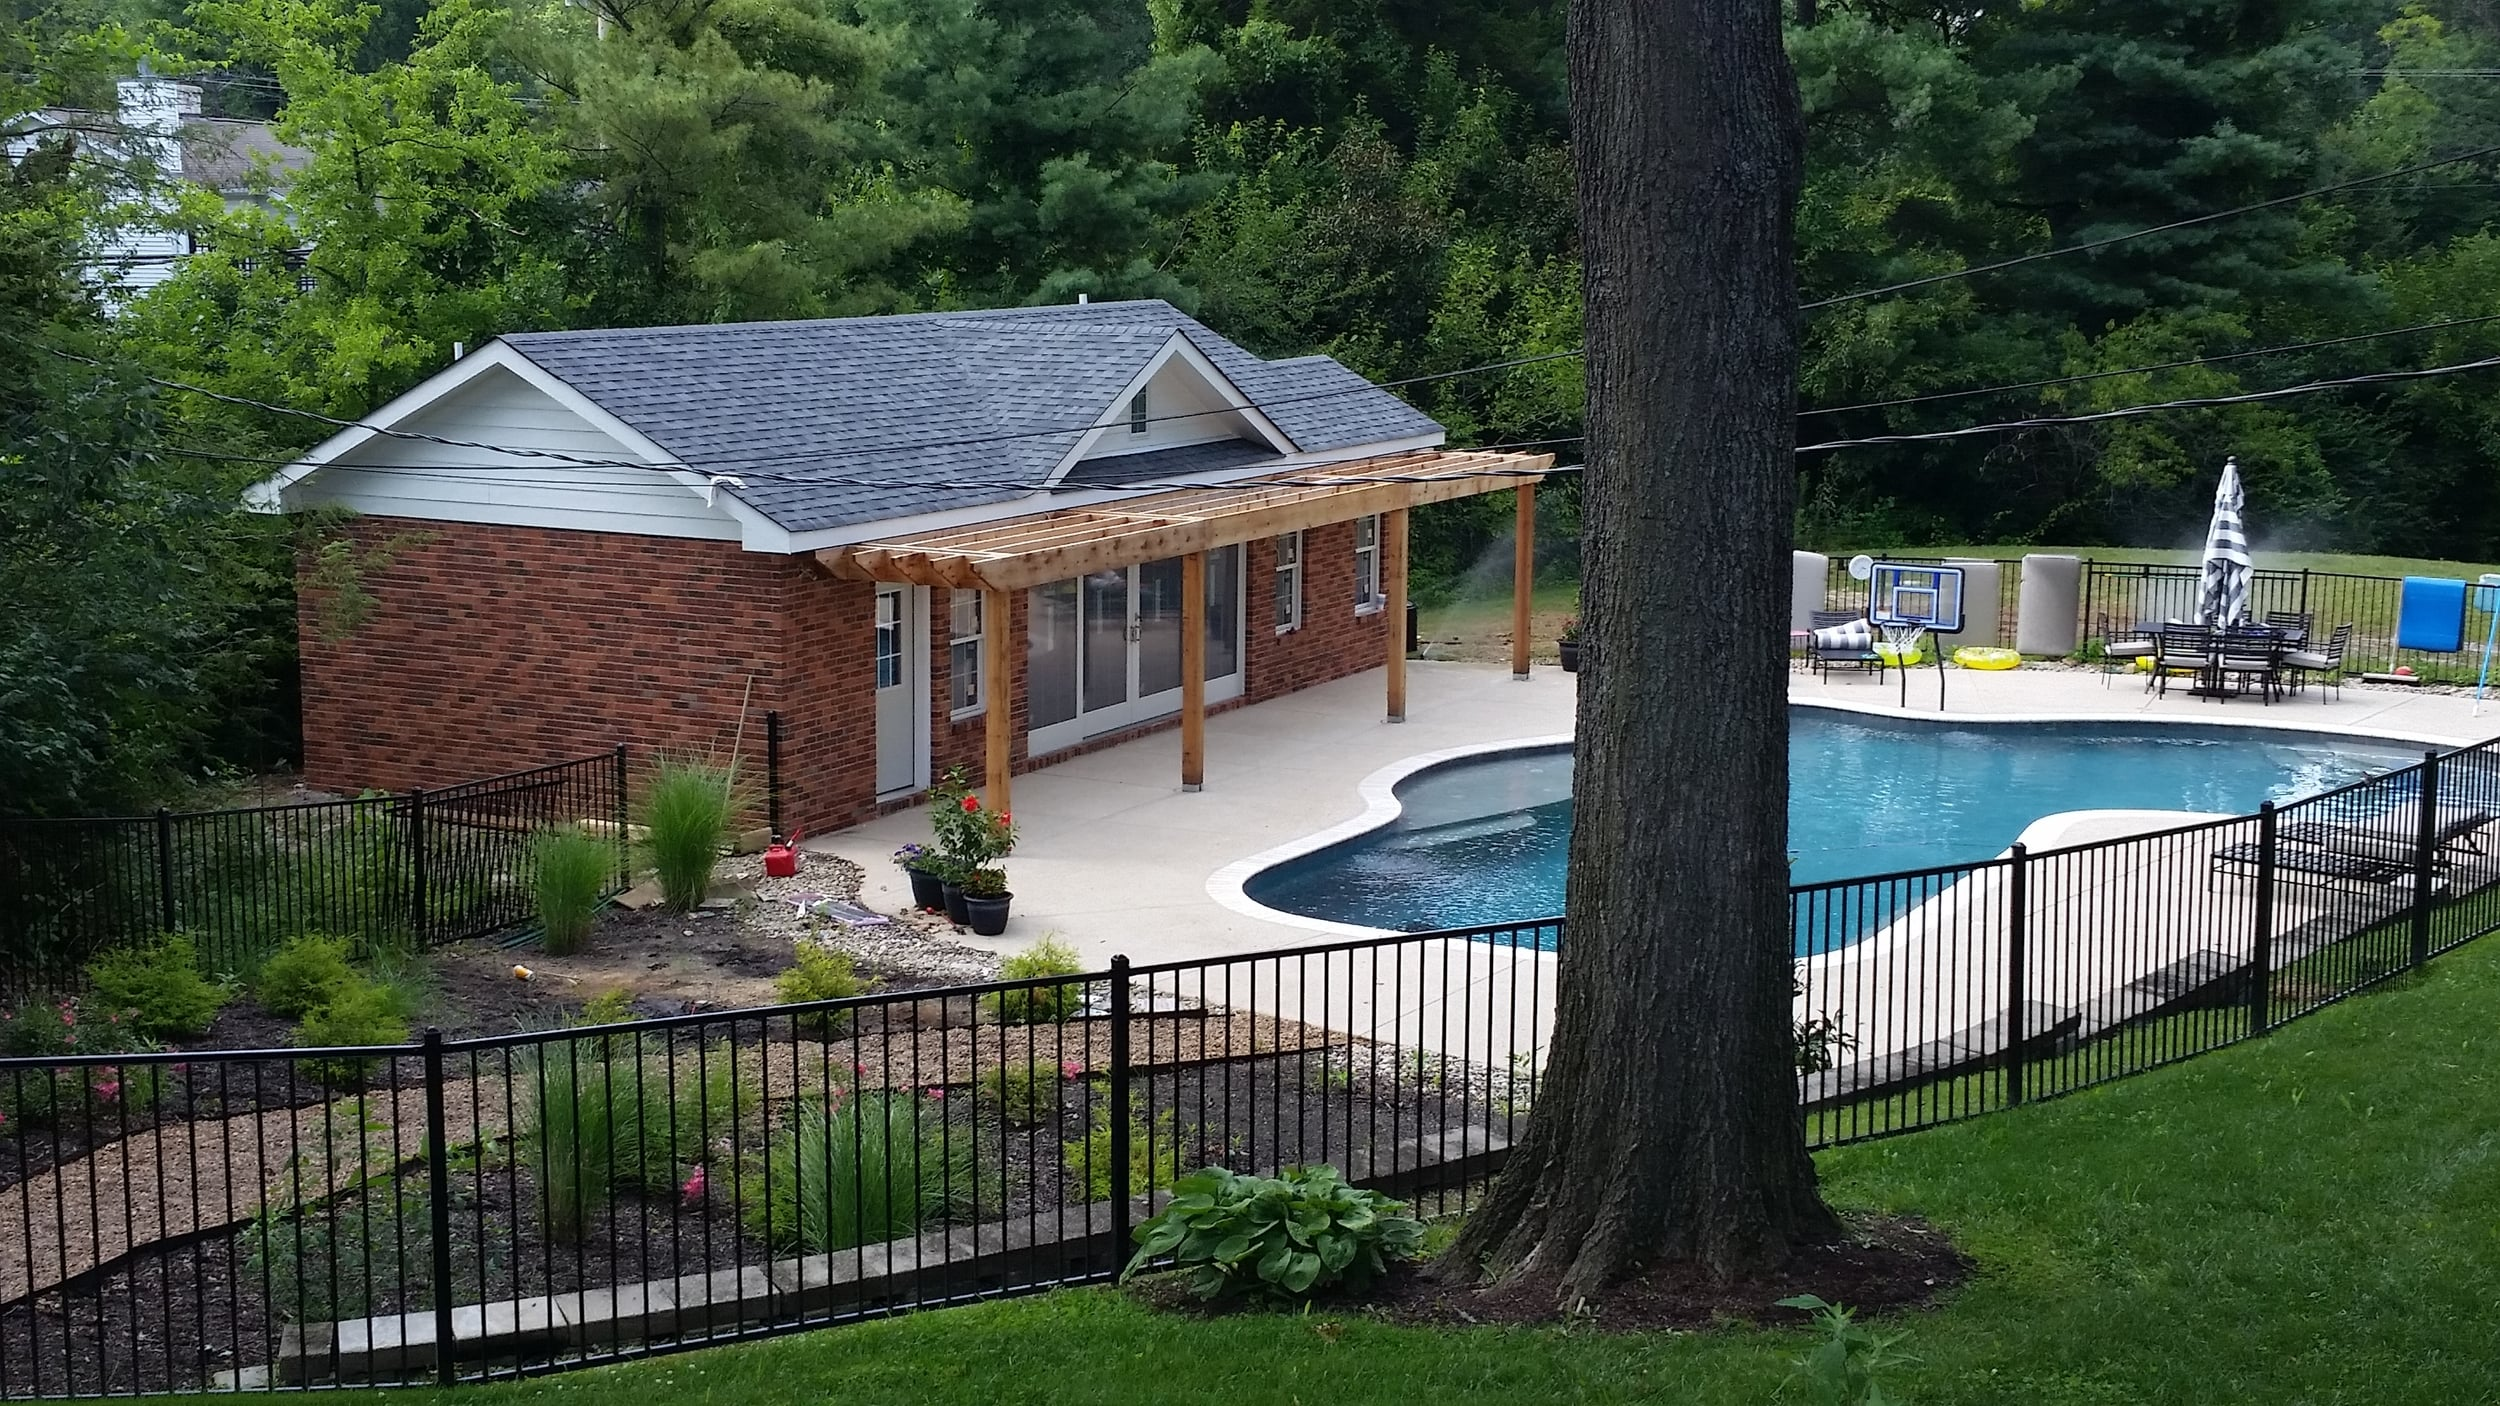 New pool house built from the ground up.